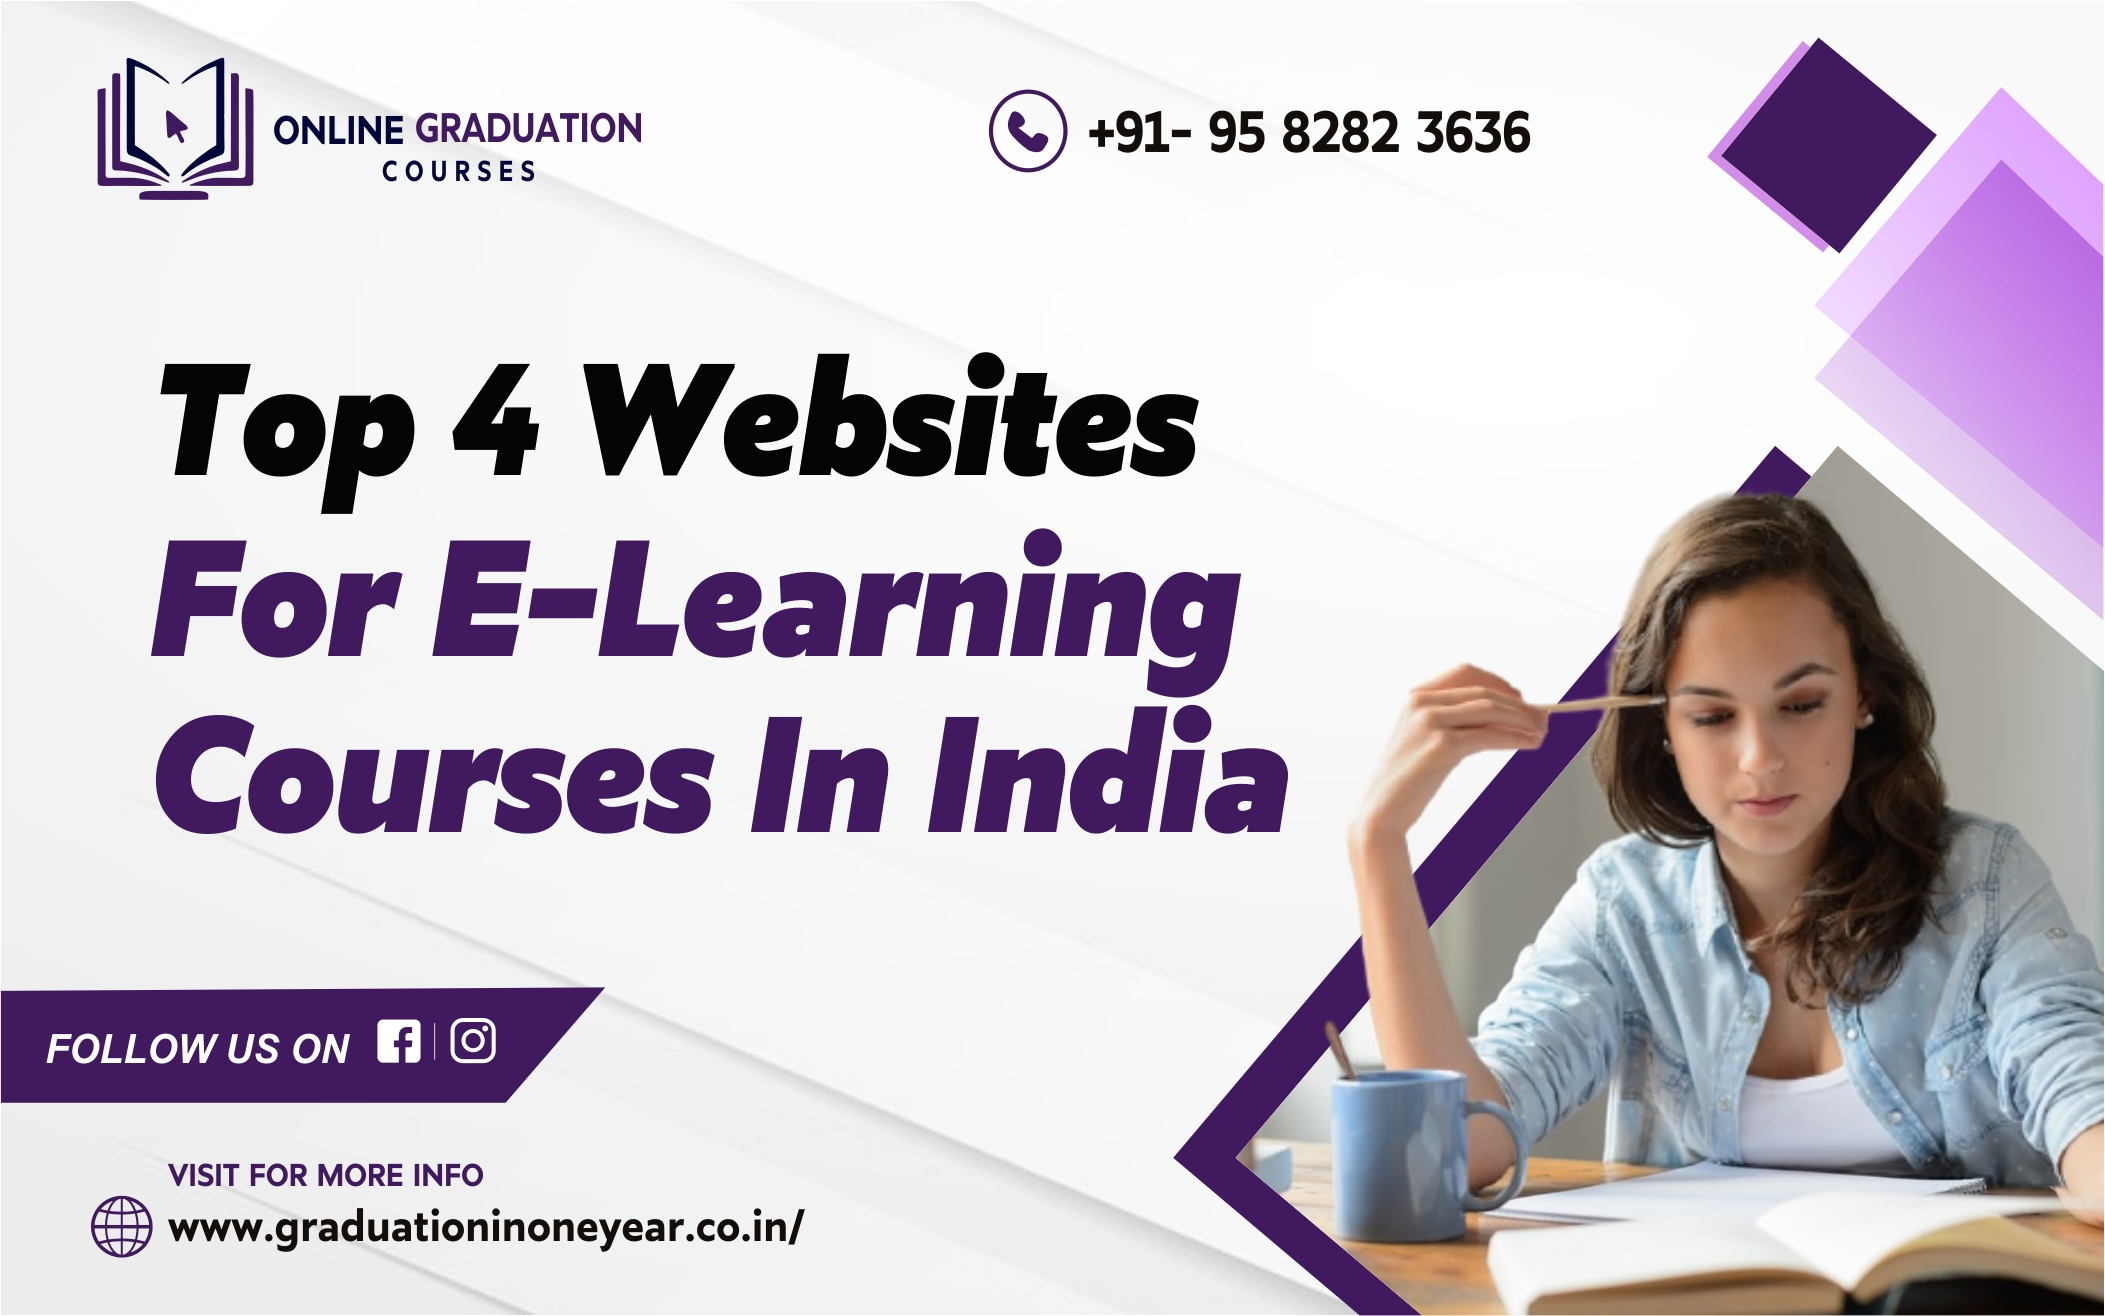 top 4 websites for E-learning courses